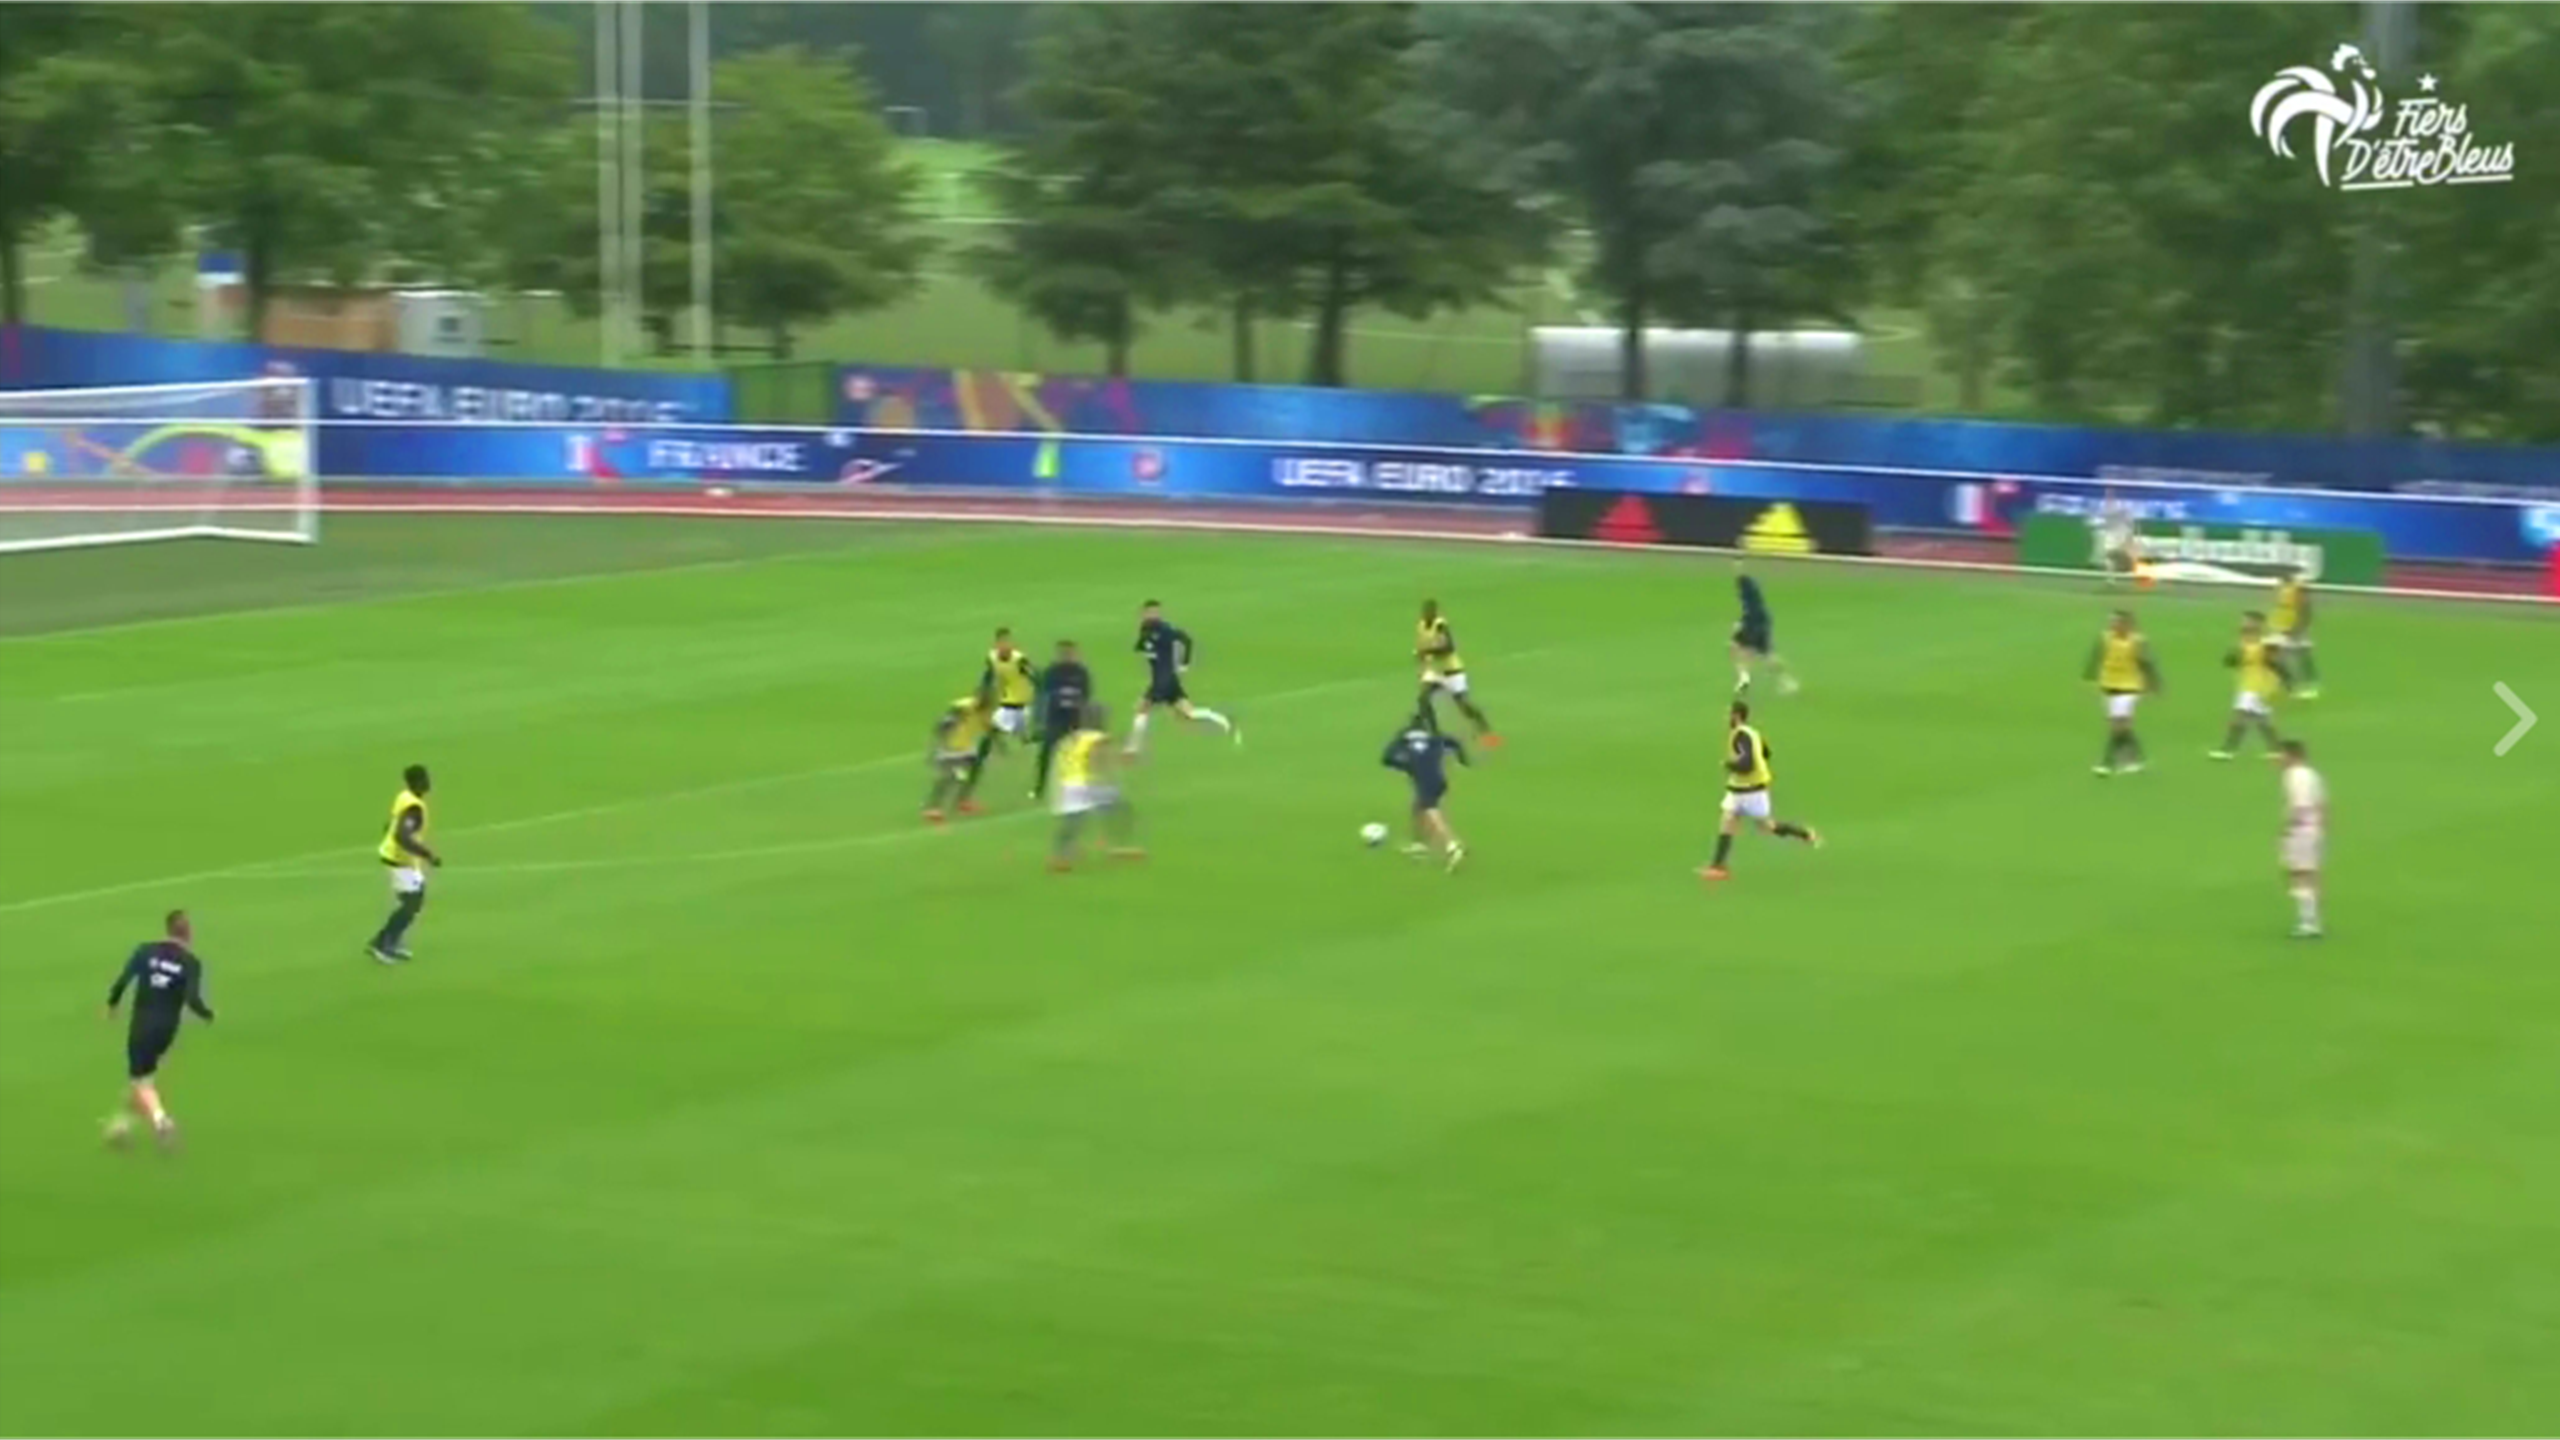 France's Dimitri Payet scores a stunning goal in training at Euro 2016 (Facebook)